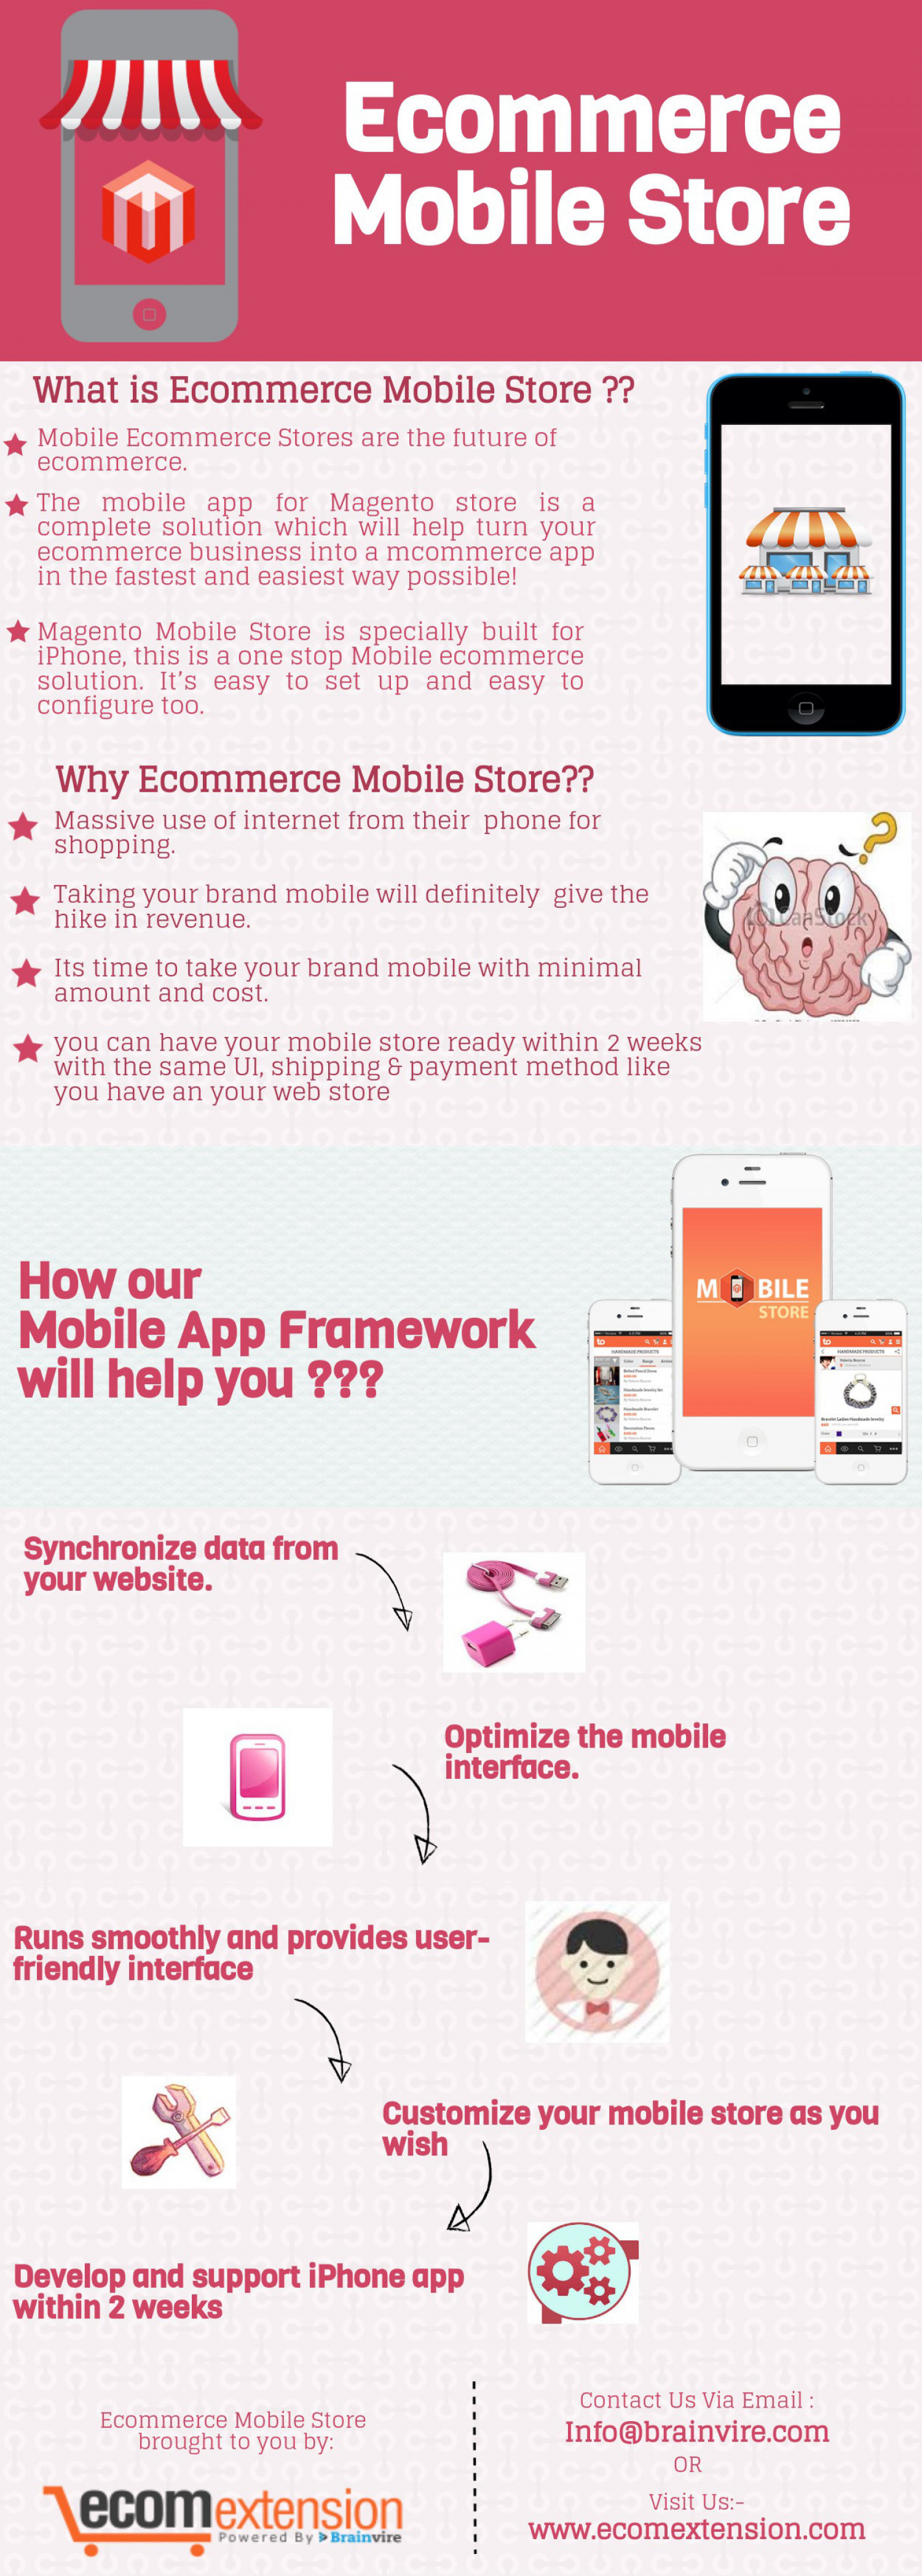 Magento Ecommerce Mobile Store Infographic